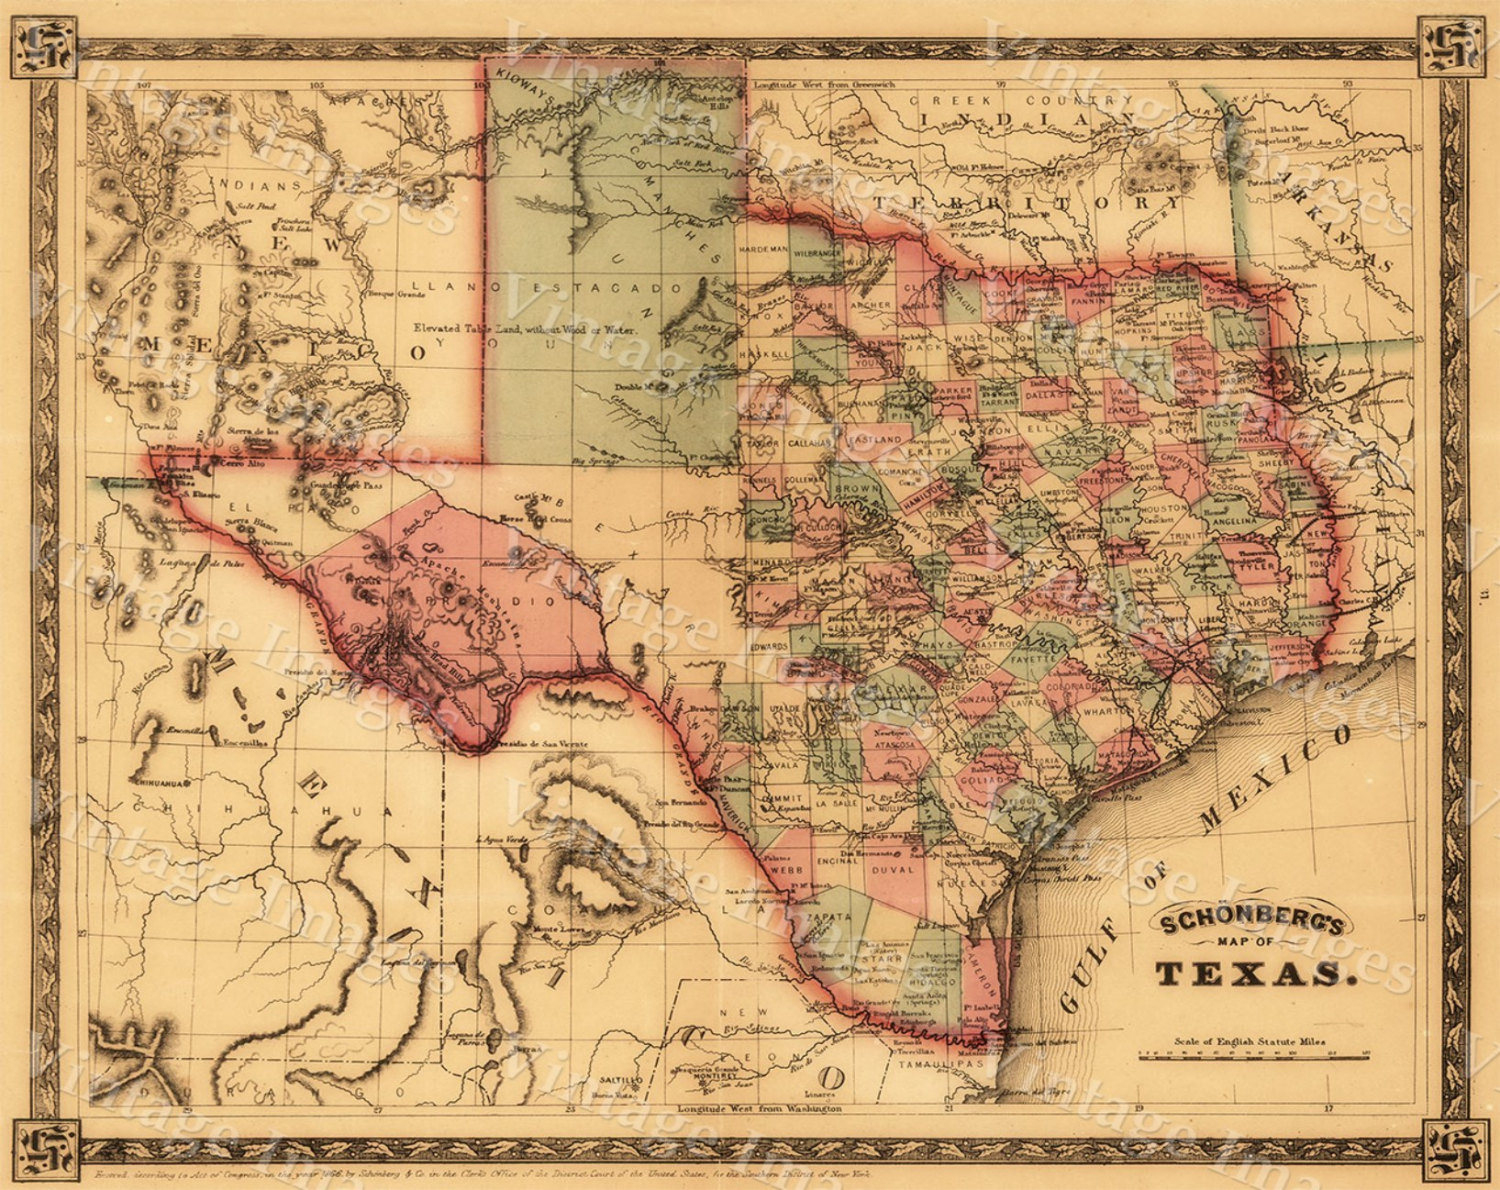 1866 Texas Map Old West Map Antique Texas Map Restoration - Old Texas Maps Prints